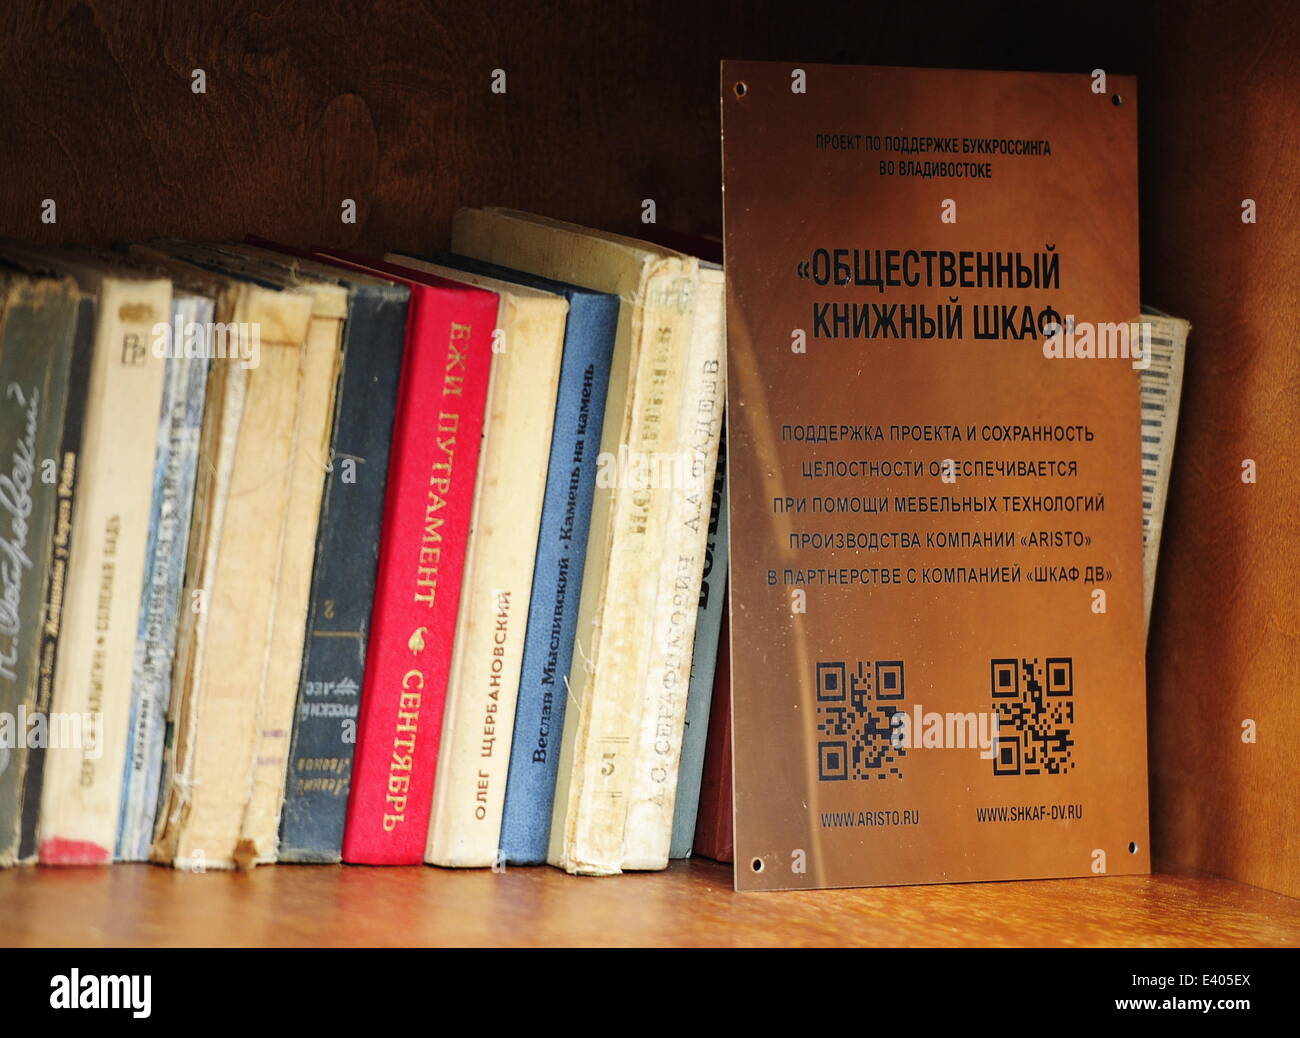 A Bookshelf Of Public Bookcase Placed In Square Named After Sukhanov People Can Take Any Book For Free And Read It Nearby On